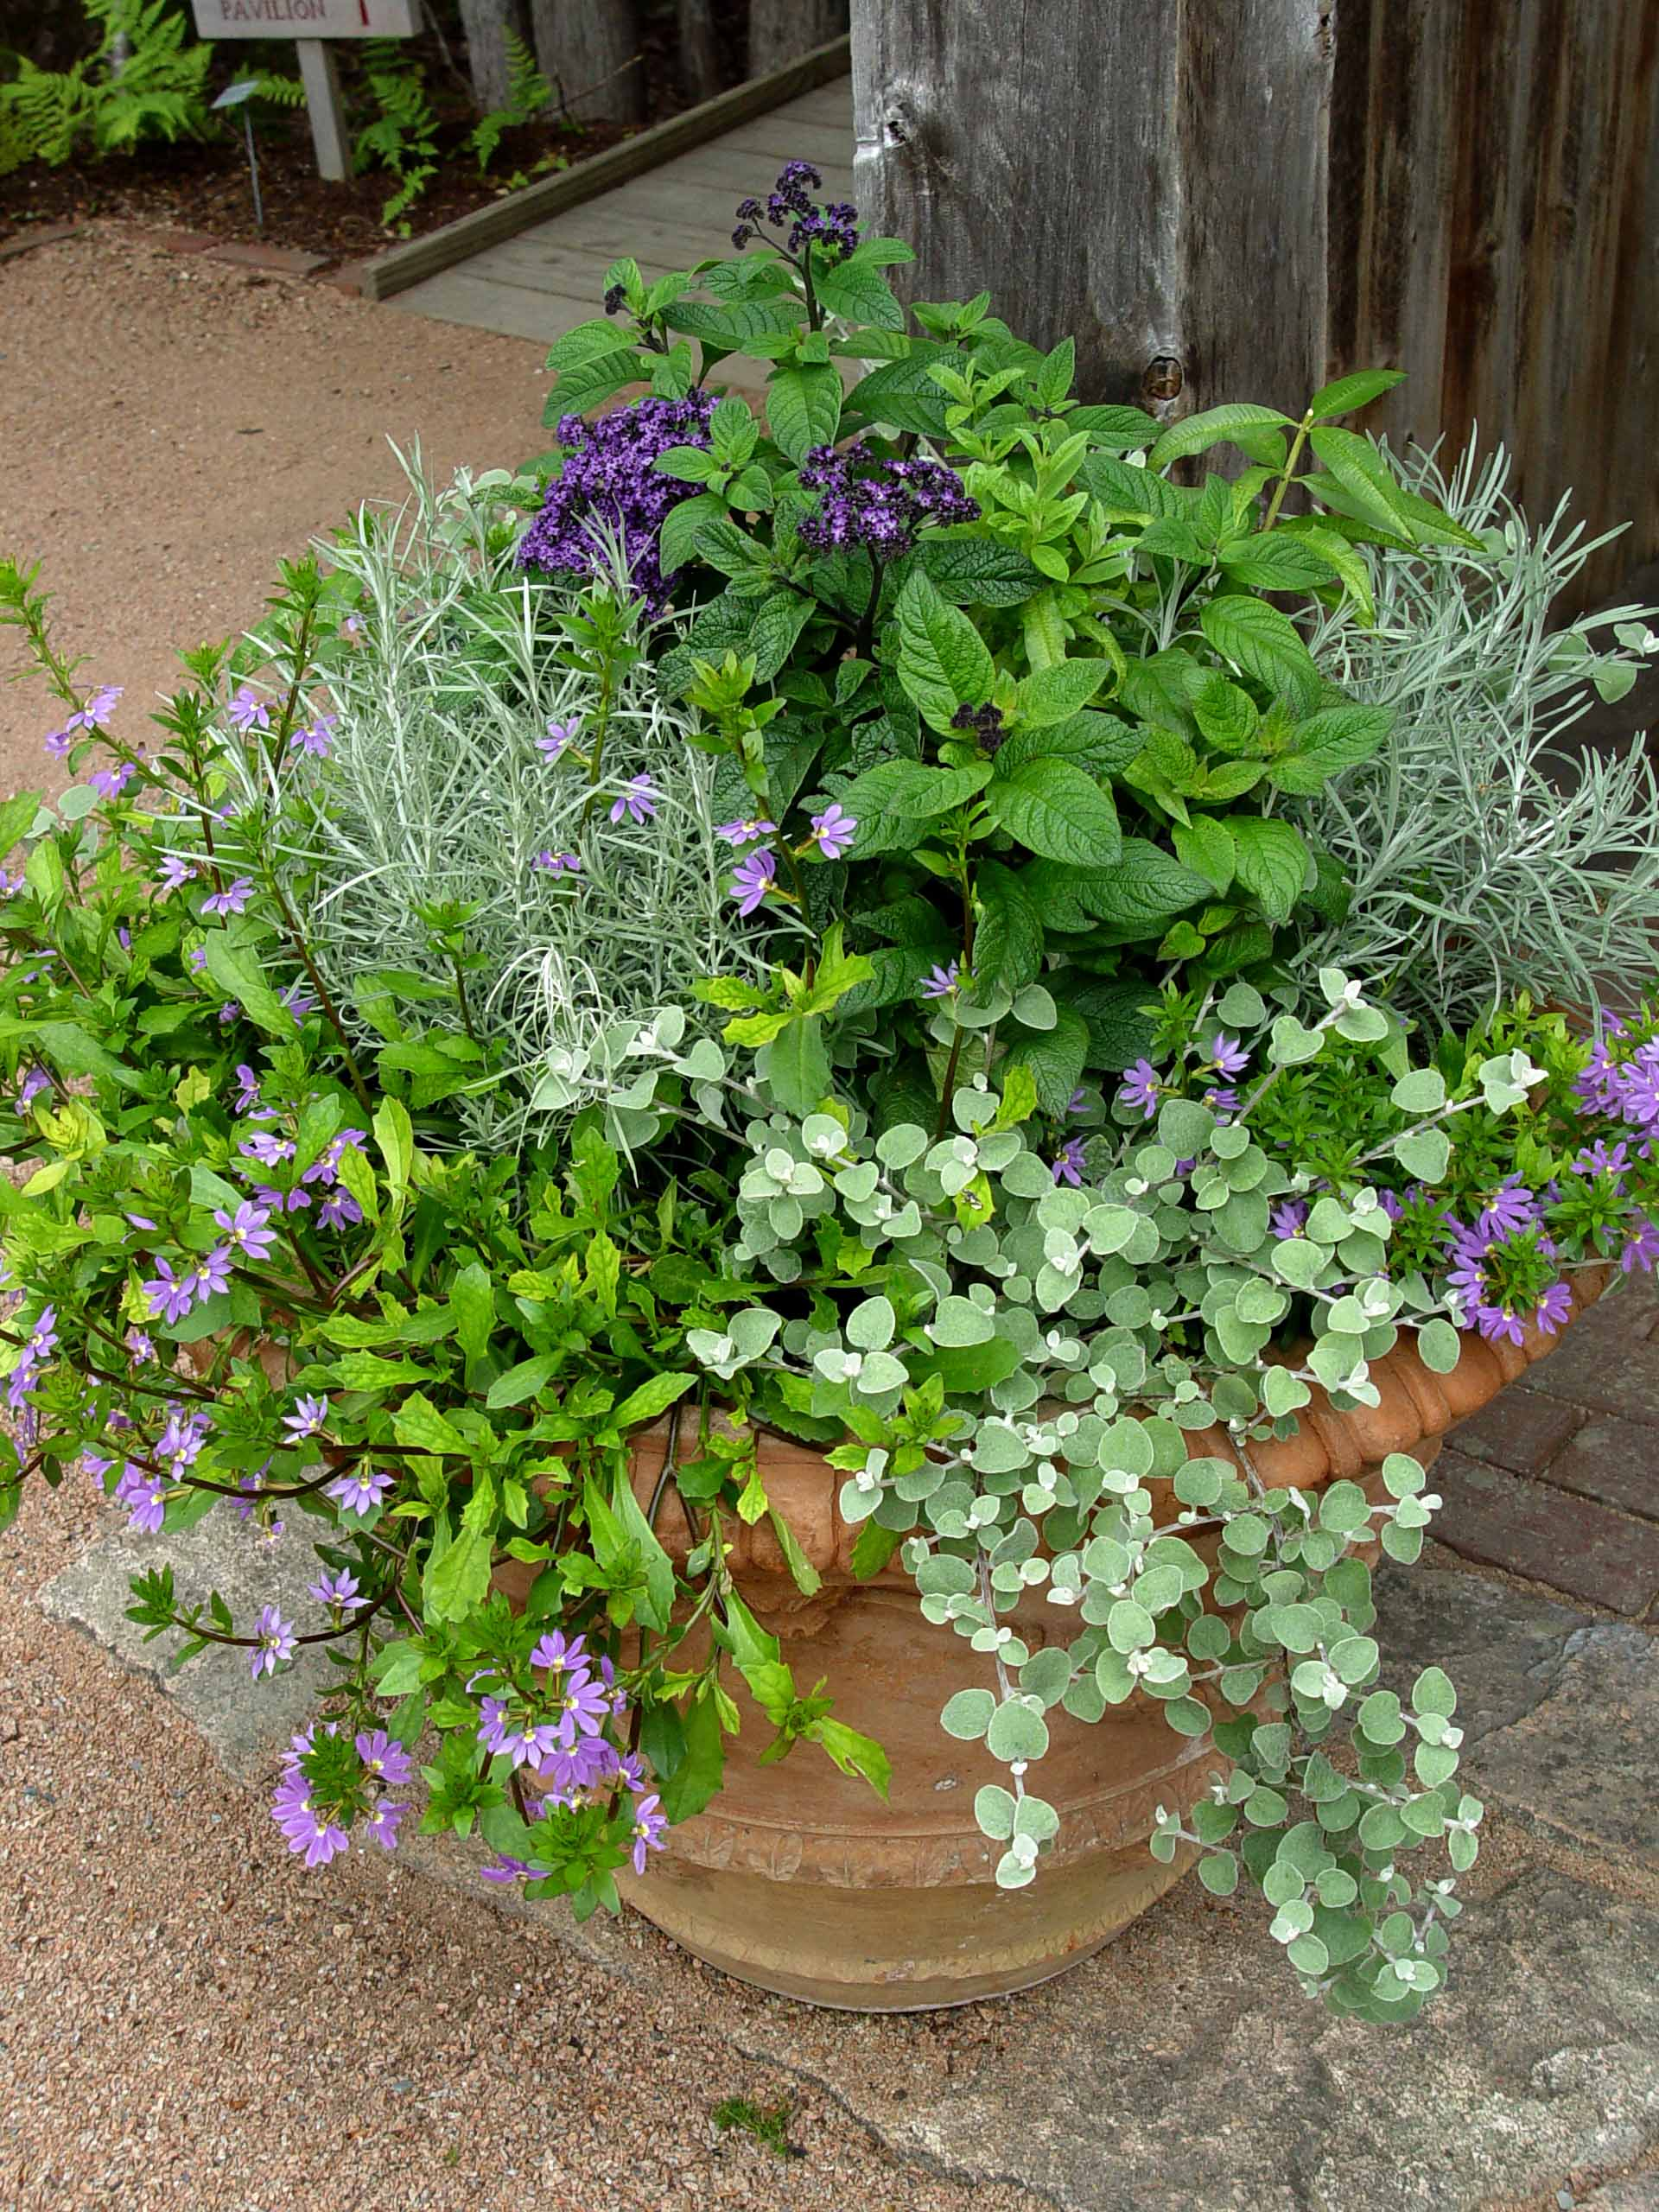 Charmful Containers Pot Ways To Pot Garden Garden Housecalls Herb Garden Containers Garden Pots garden Creative Garden Containers